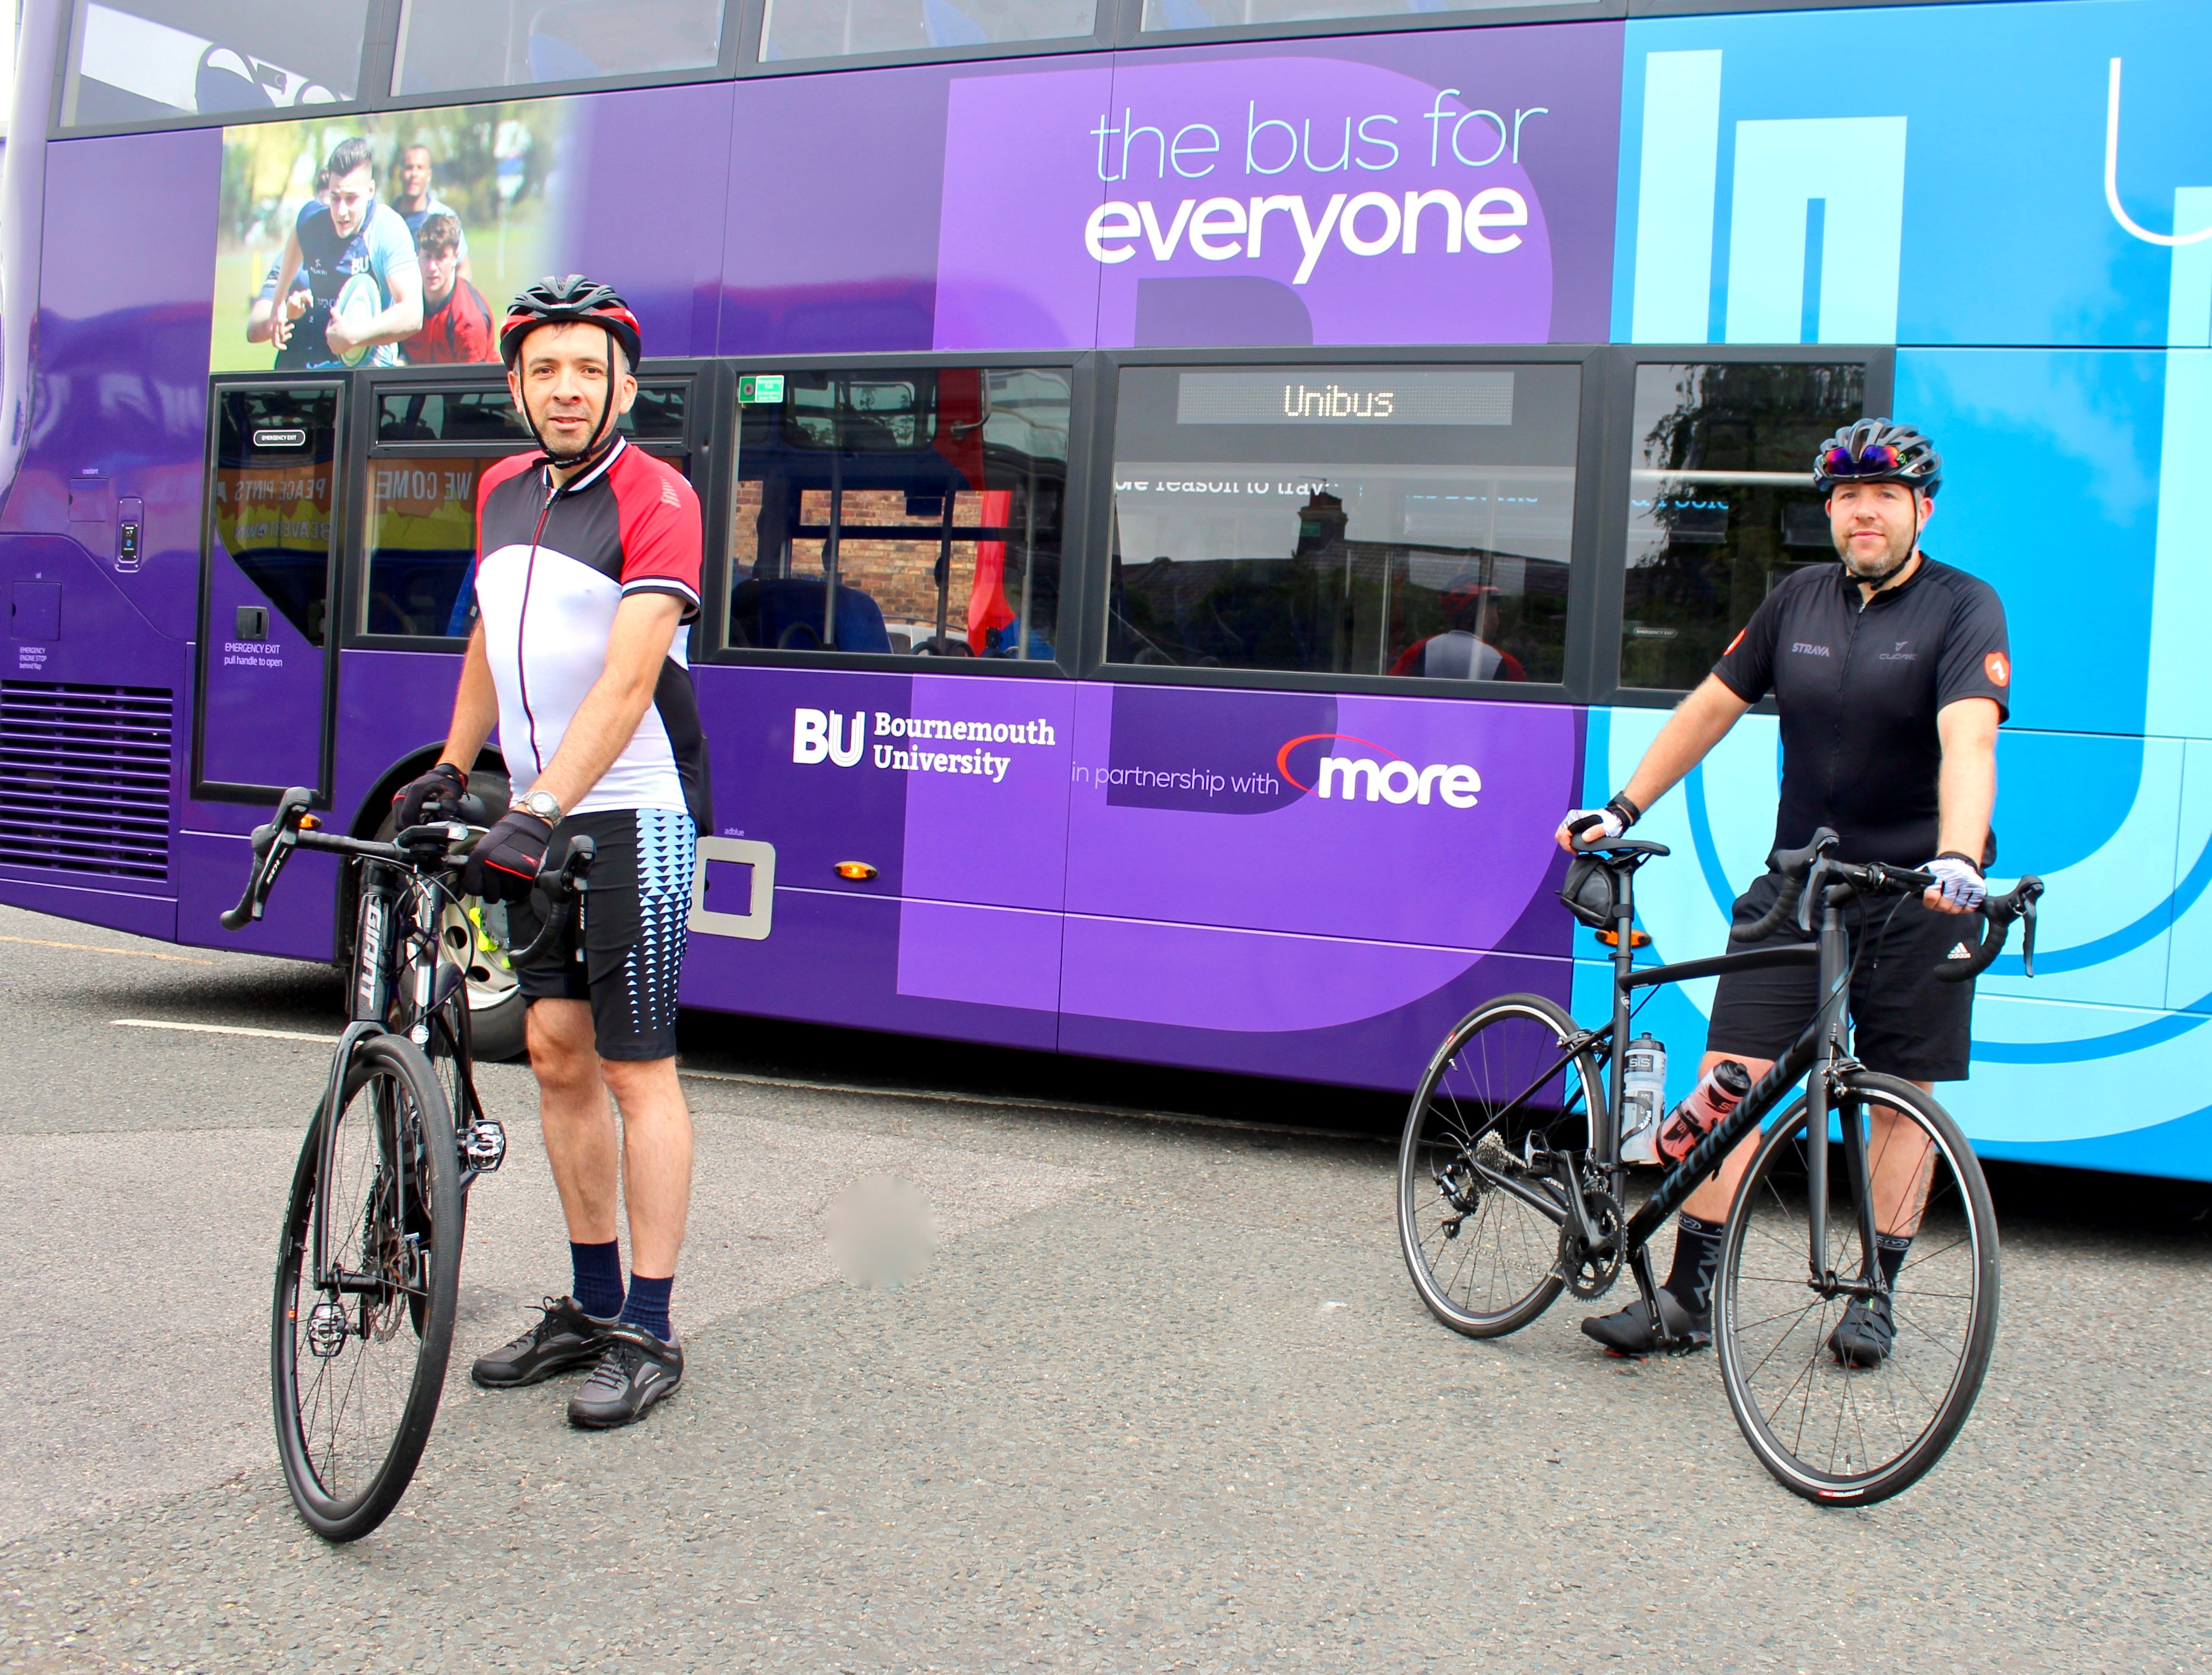 a photograph of martin and kris on their bikes in front of a bus